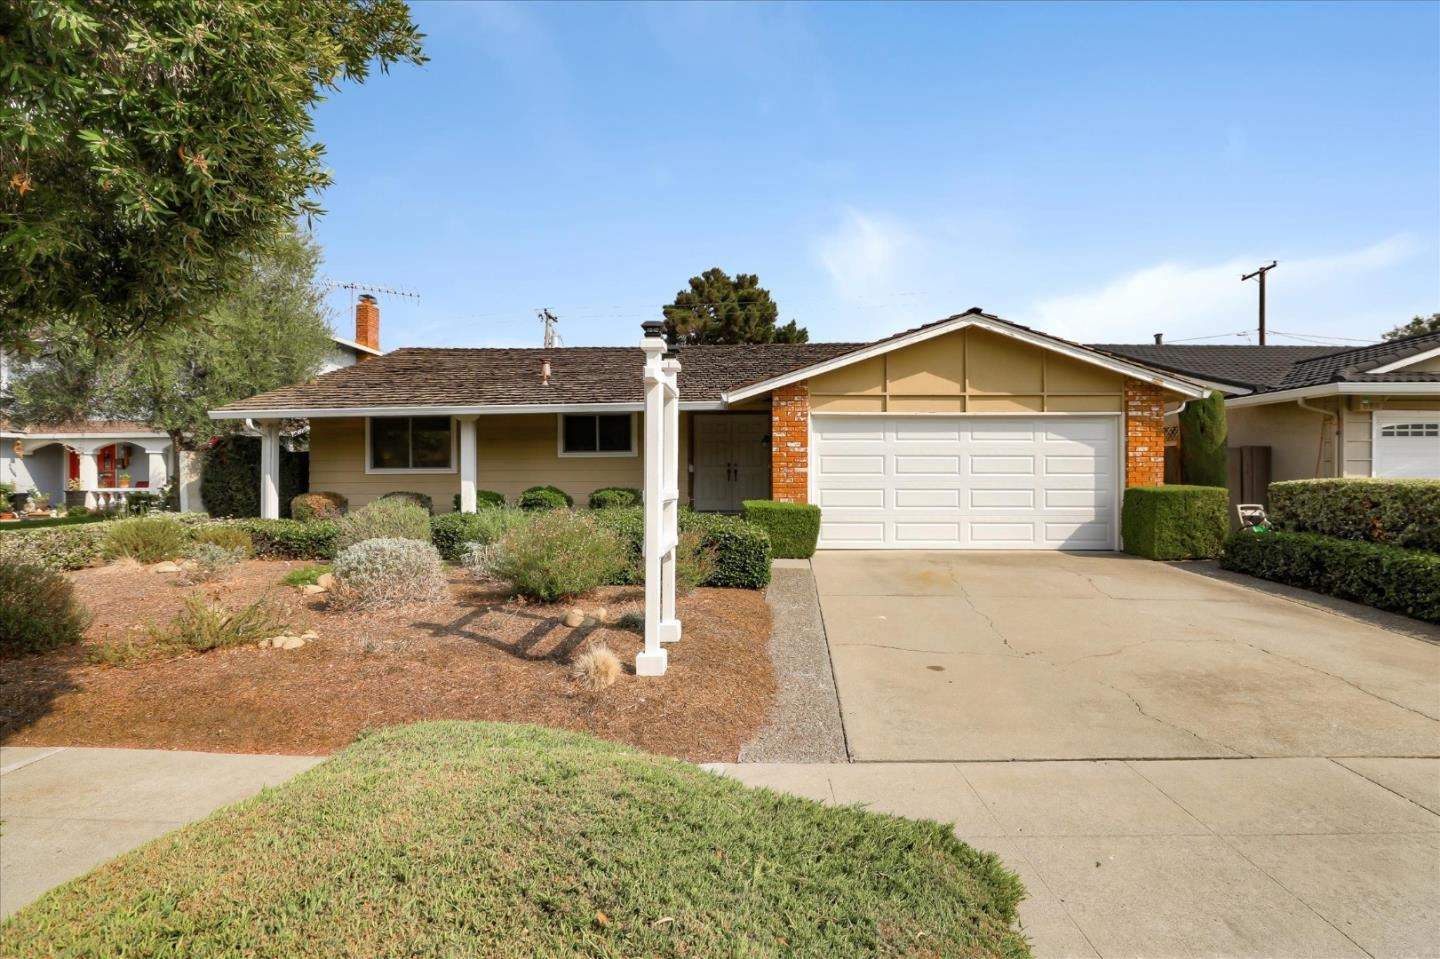 Photo for 1474 Jamestown DR, CUPERTINO, CA 95014 (MLS # ML81813382)